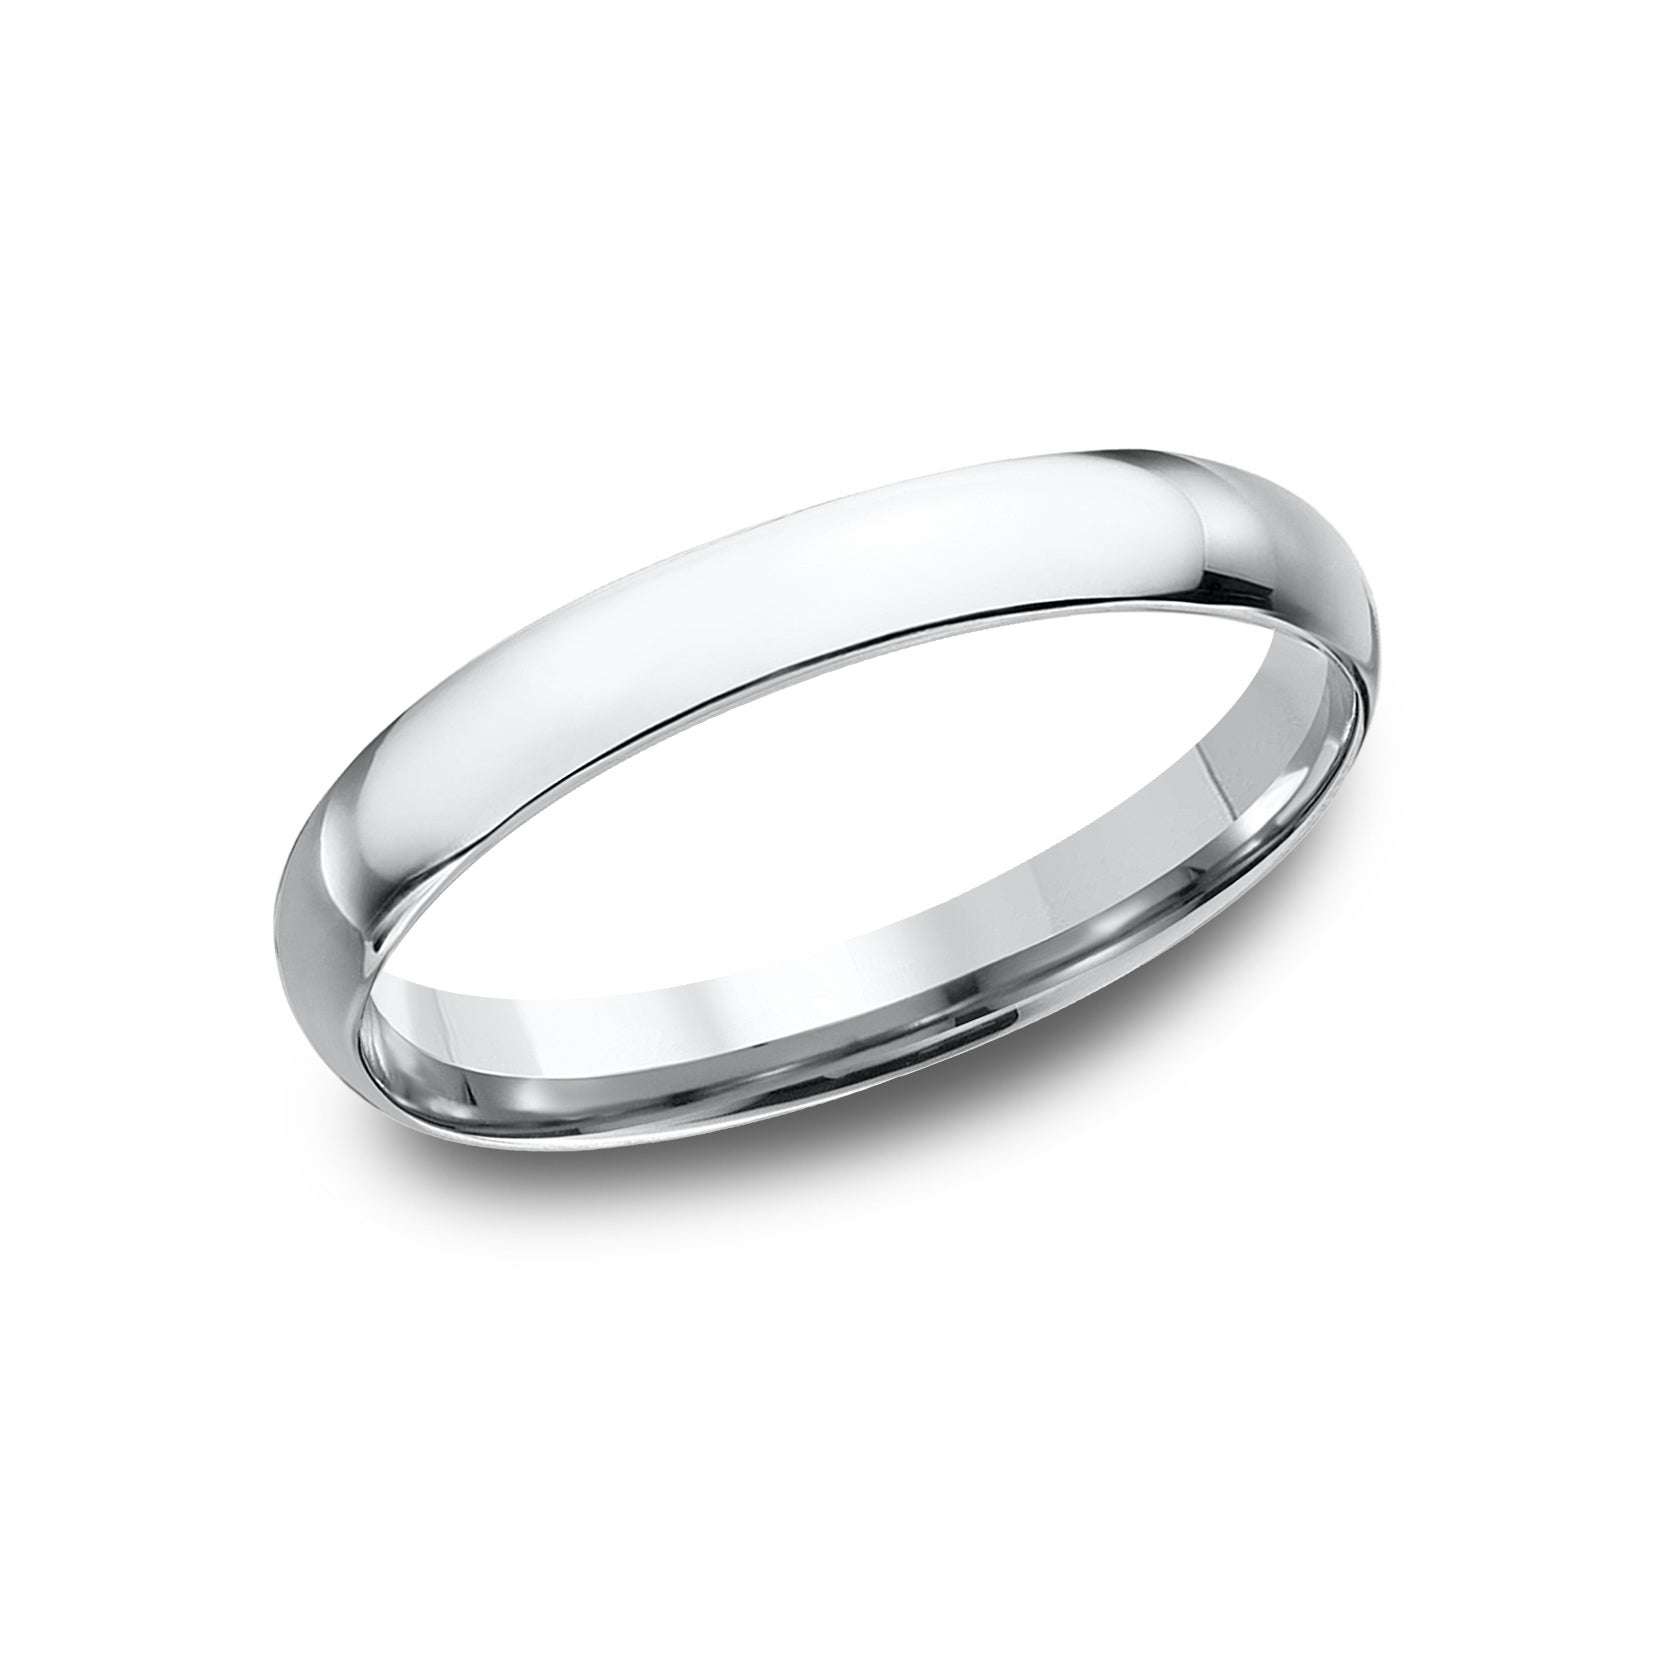 Yellow gold tungsten band all Sizes Comfort Fit Shiny Polished Domed 14k Yellow Gold Tungsten Ring Mens Wedding Band Ring 3 mm